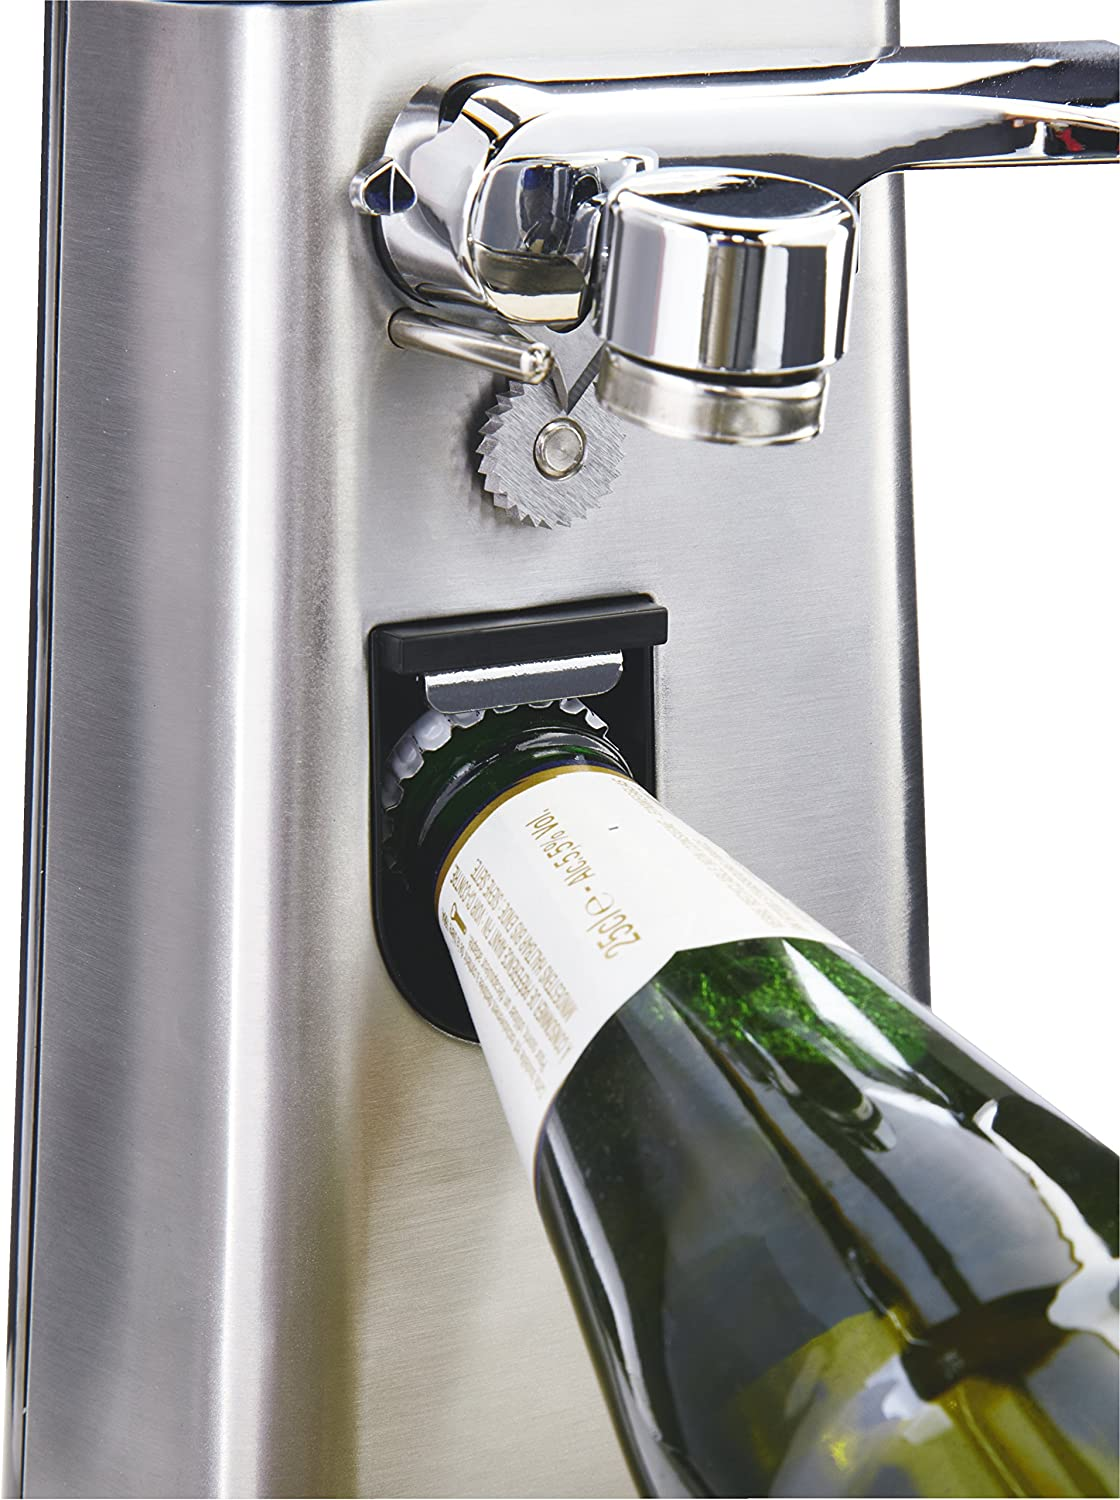 Stainless Steel Oster FPSTCN1300 Electric Can Opener